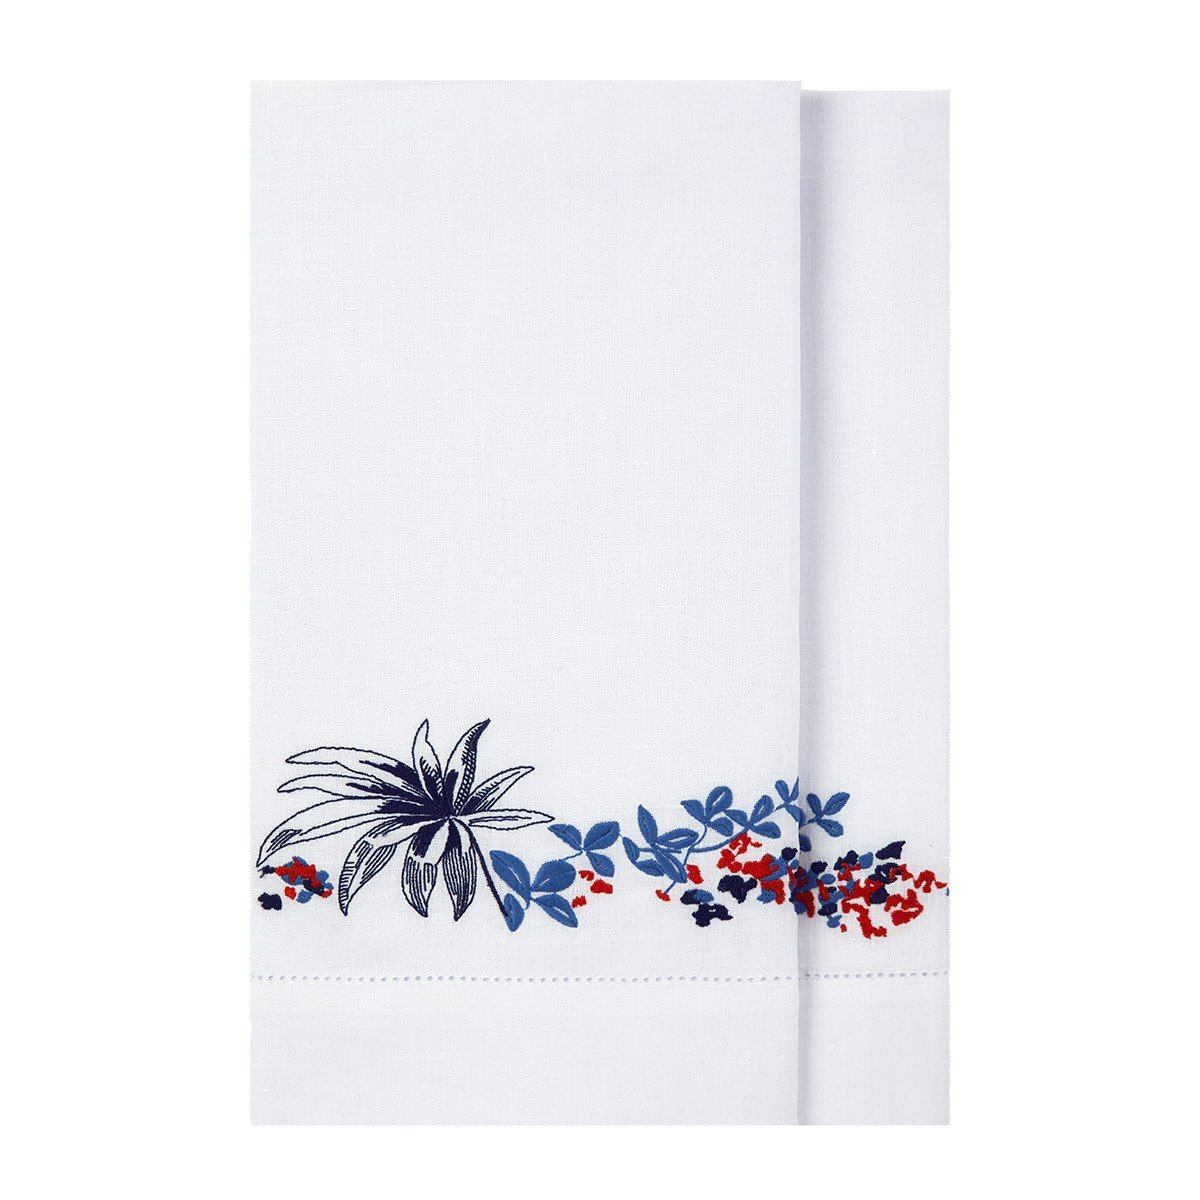 Baie Embroidered Fingertip Towels by Yves Delorme